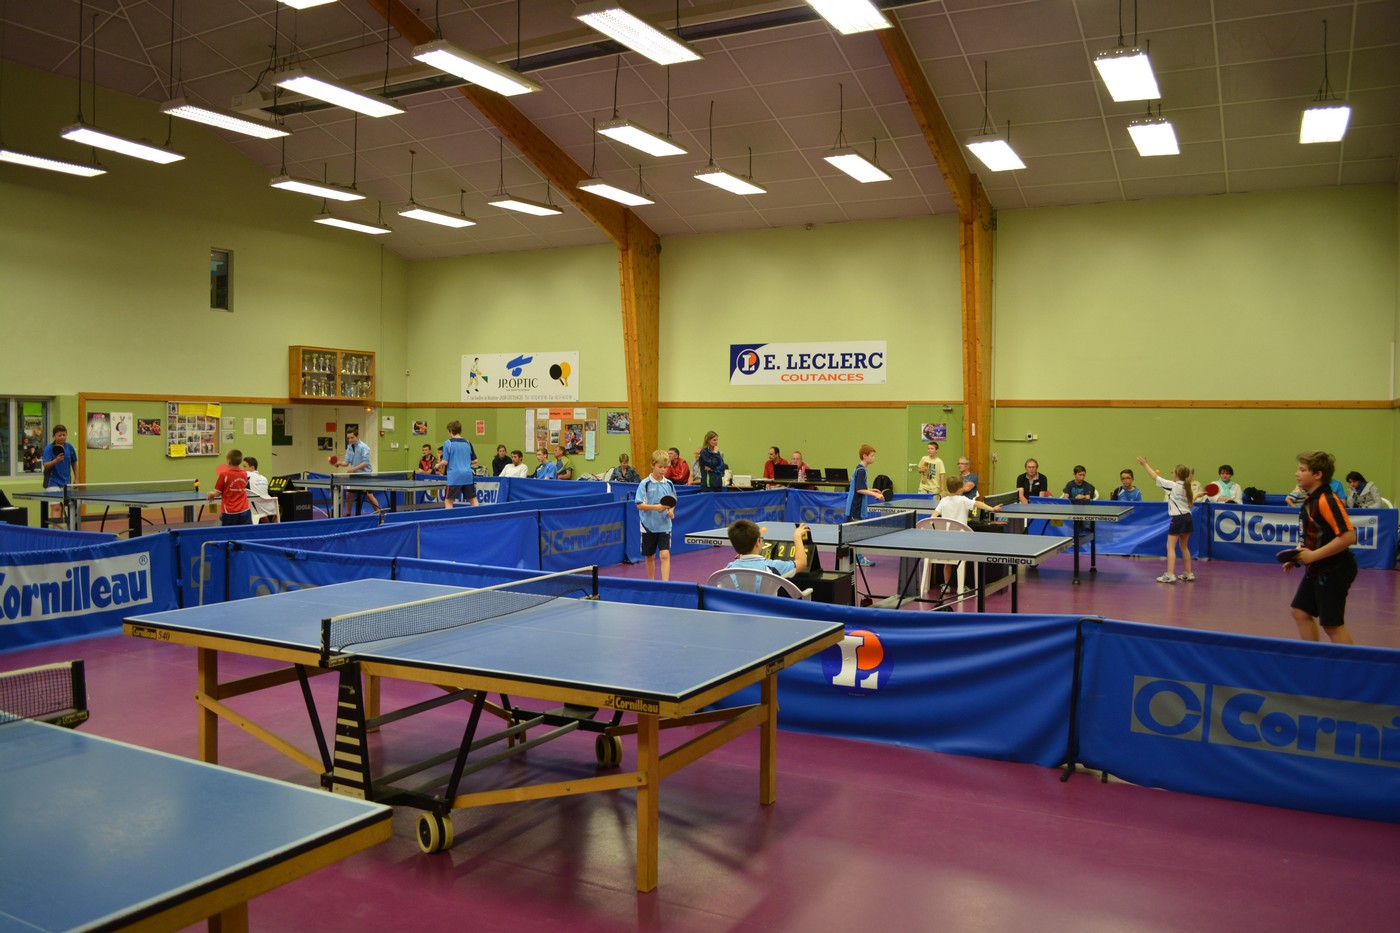 Table De Ping Pong Leclerc Nouveau Stock Ite Departemental De Tennis De Table De La Manche] Informations